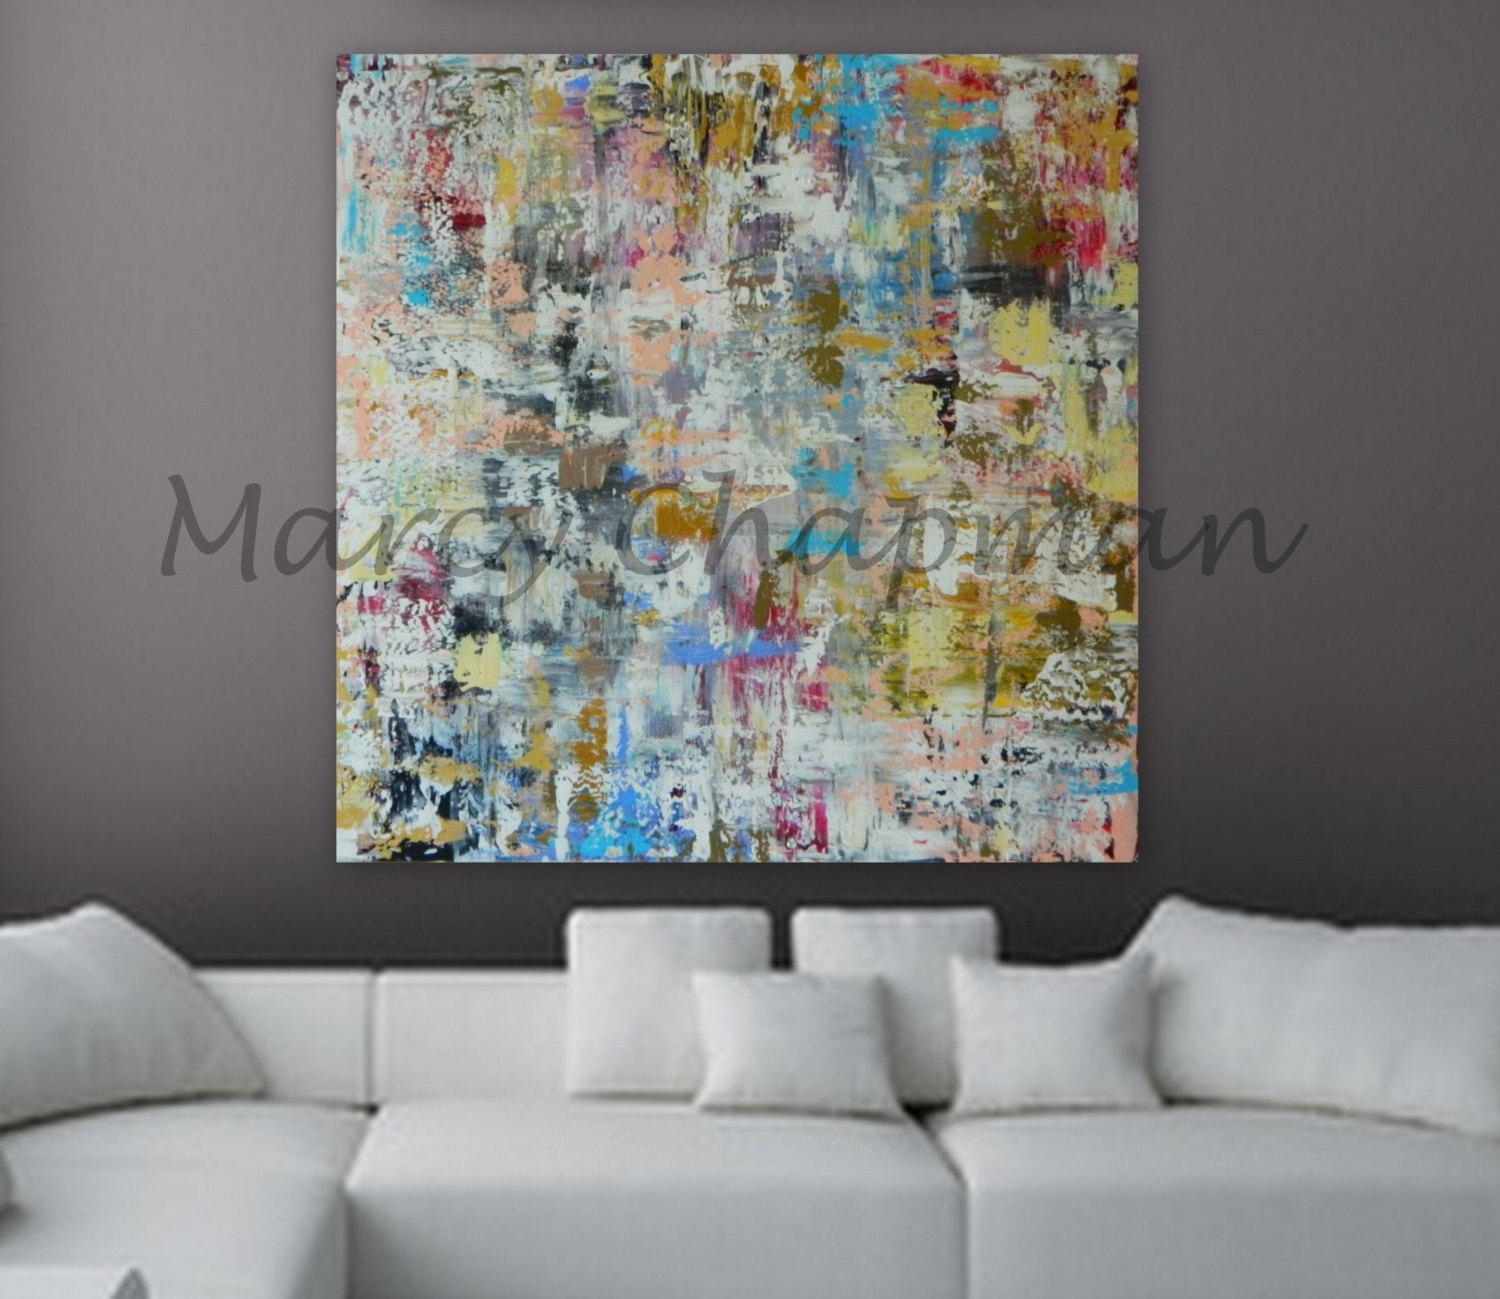 Xl, Large, Huge Abstract Painting 46 X 46 Unstretched Canvas intended for 48X48 Canvas Wall Art